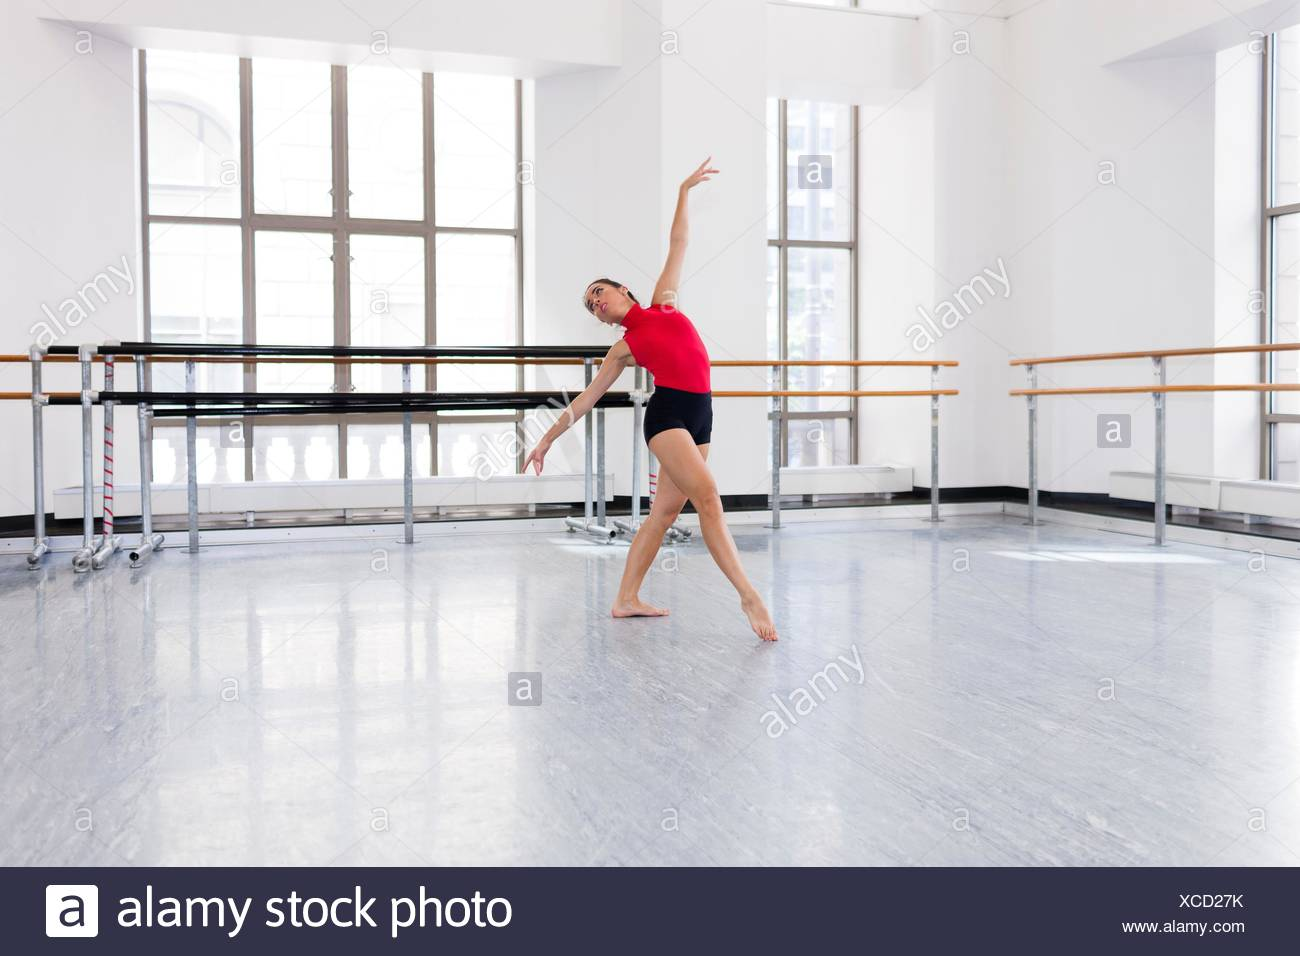 Young woman in dance studio dancing, head back, arms raised - Stock Image